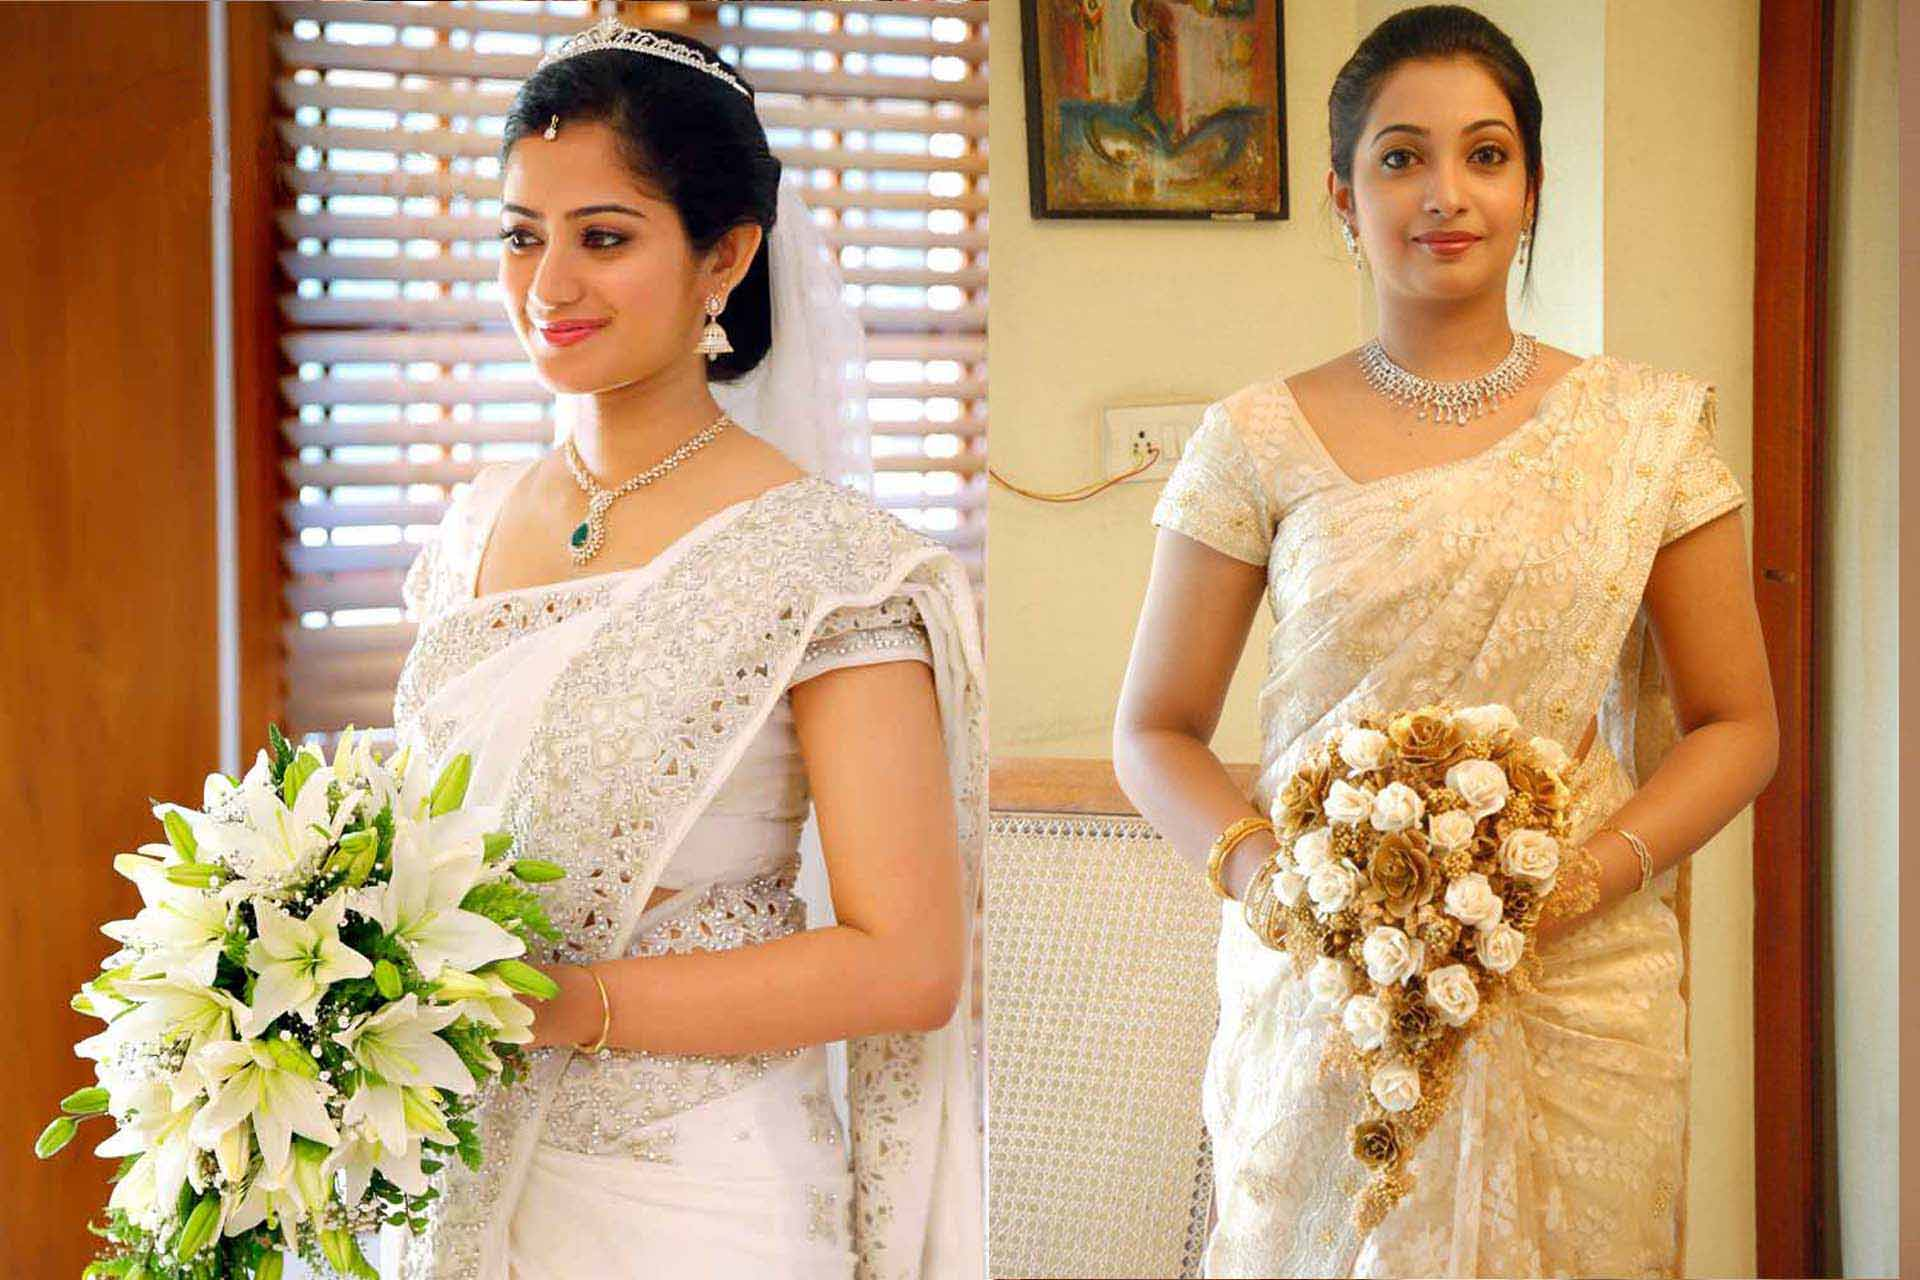 Christian Bridal Gowns For Rent In Chennai : Akssha parlour bridal make up gallery best makeup in